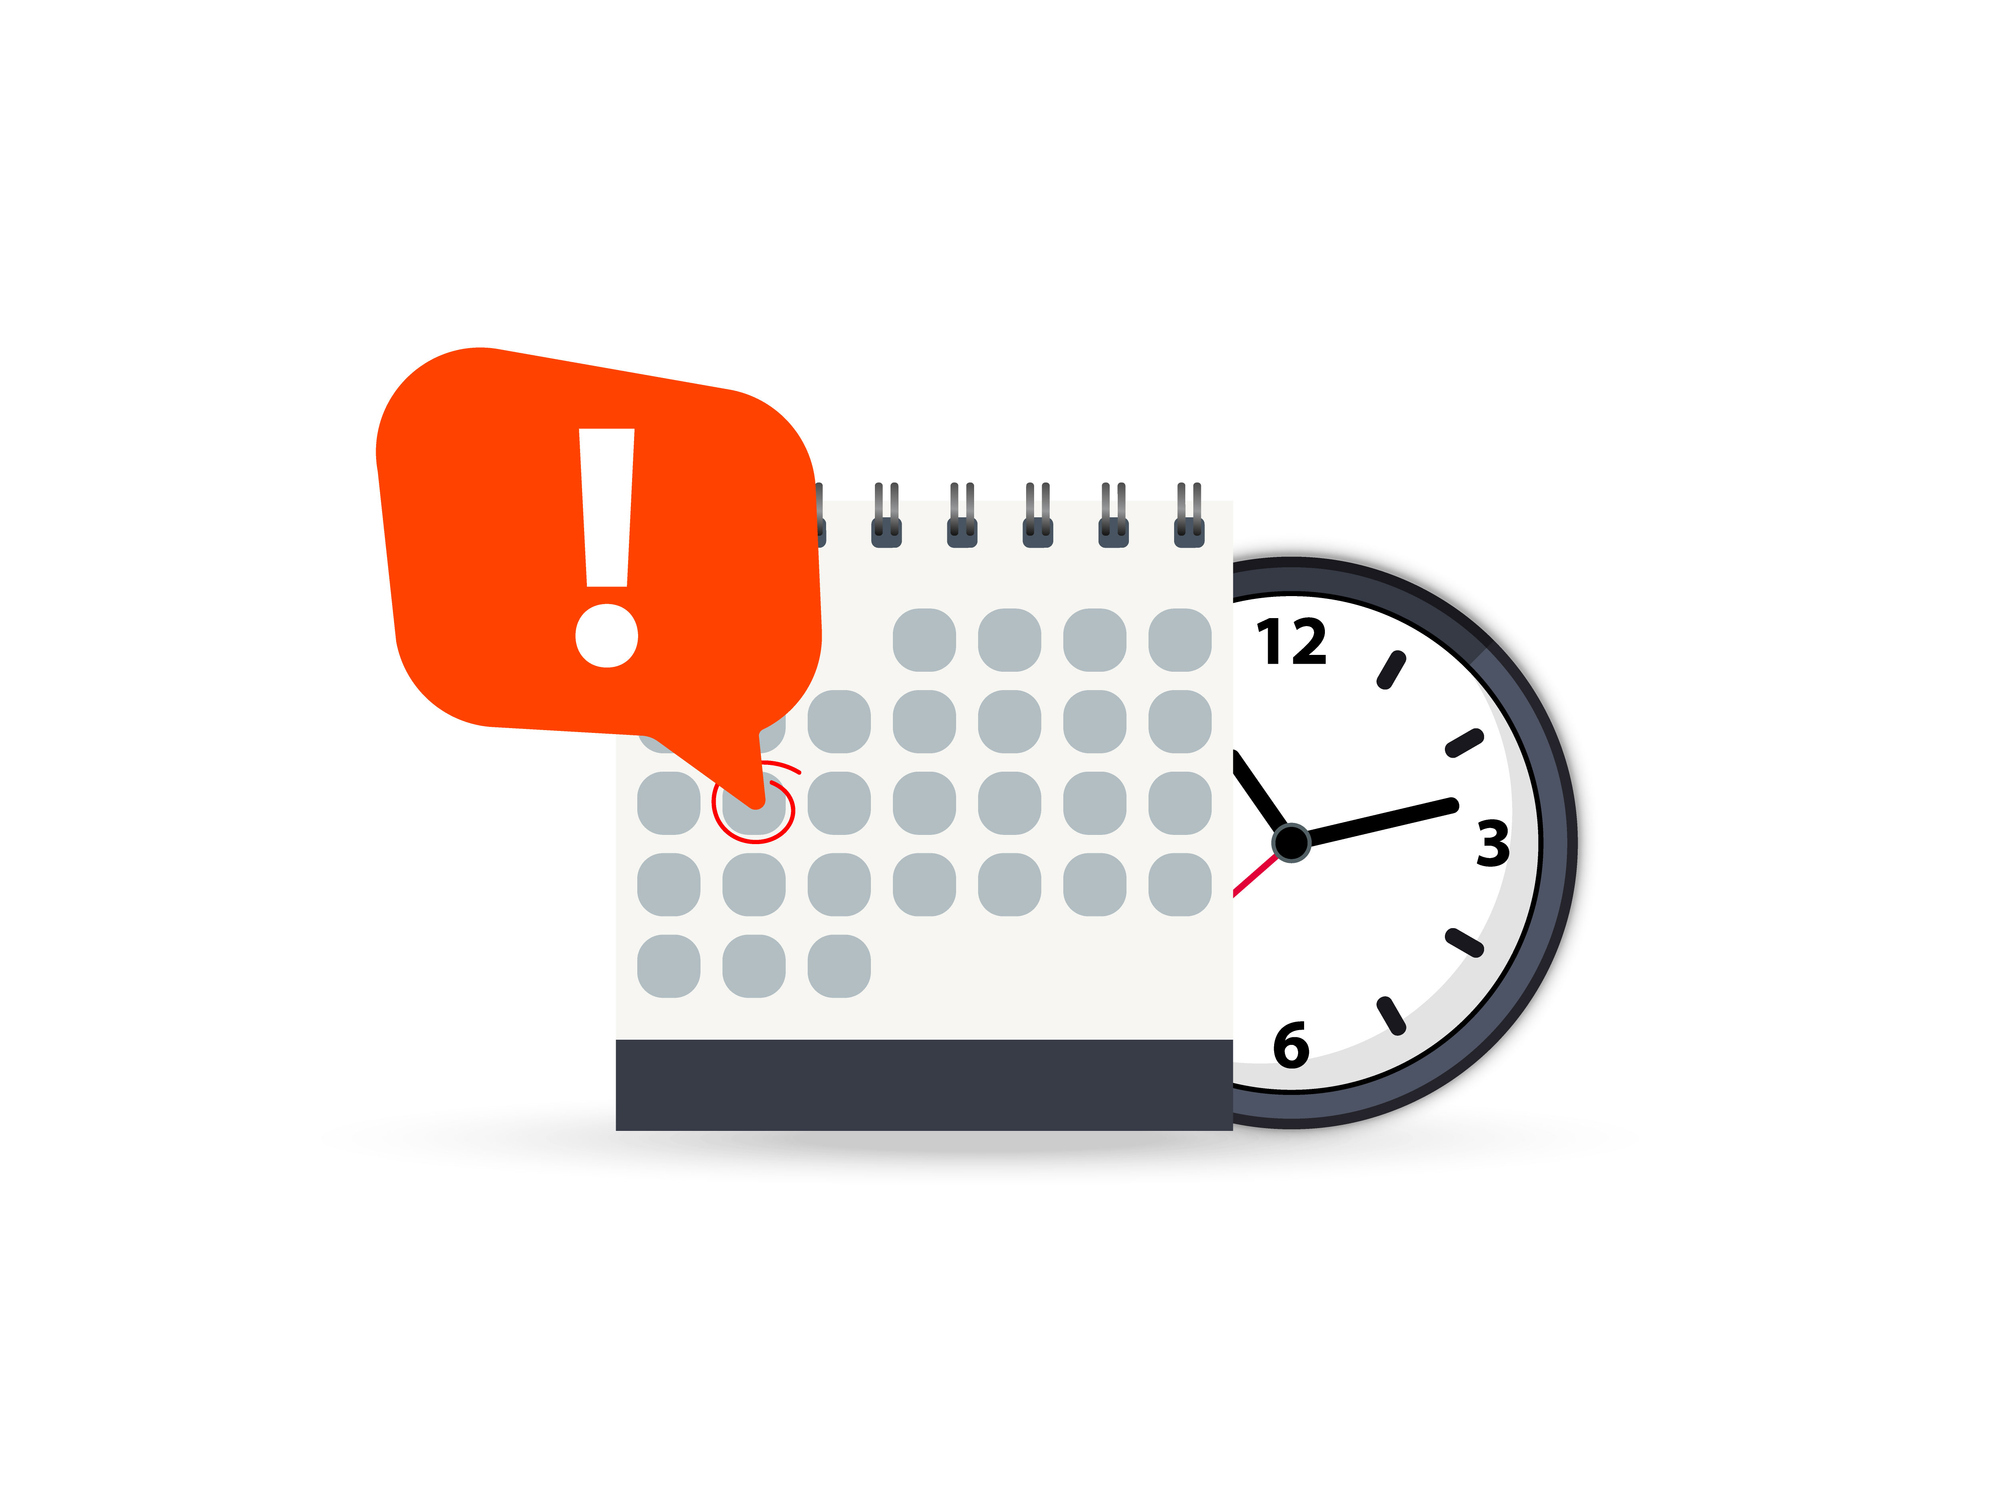 Meeting tools: calendar and clock with exclamation mark